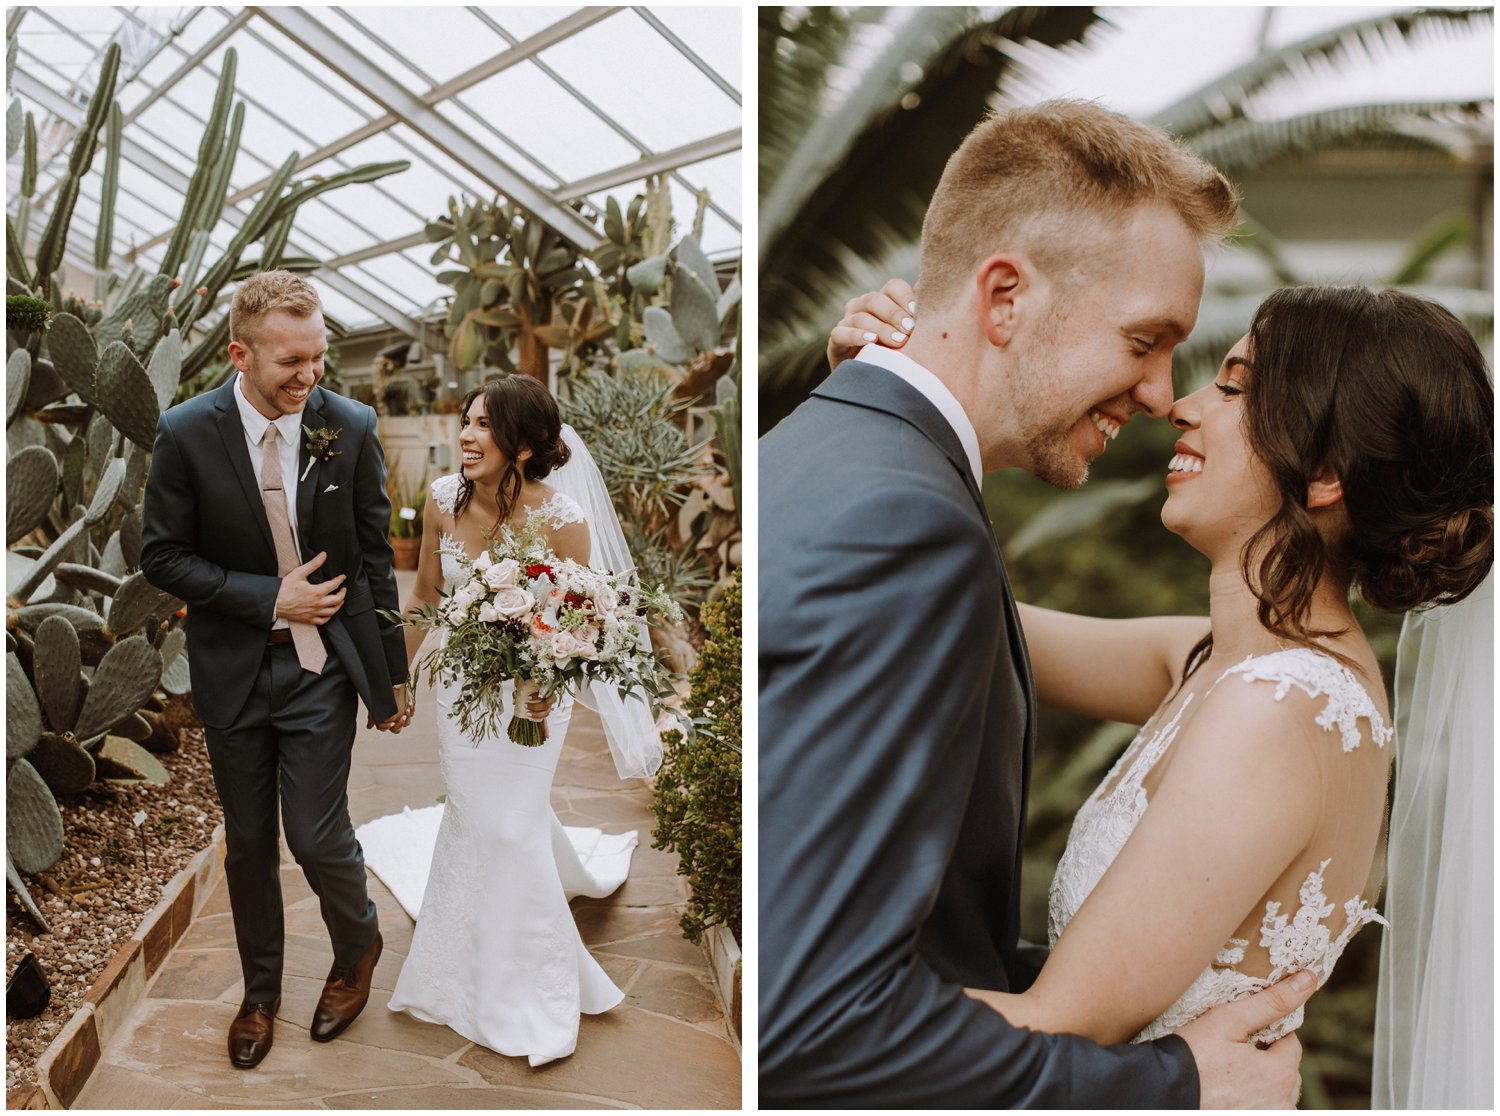 Baltimore wedding photographer | bride and groom first look | greenhouse wedding | Rawlings conservatory wedding